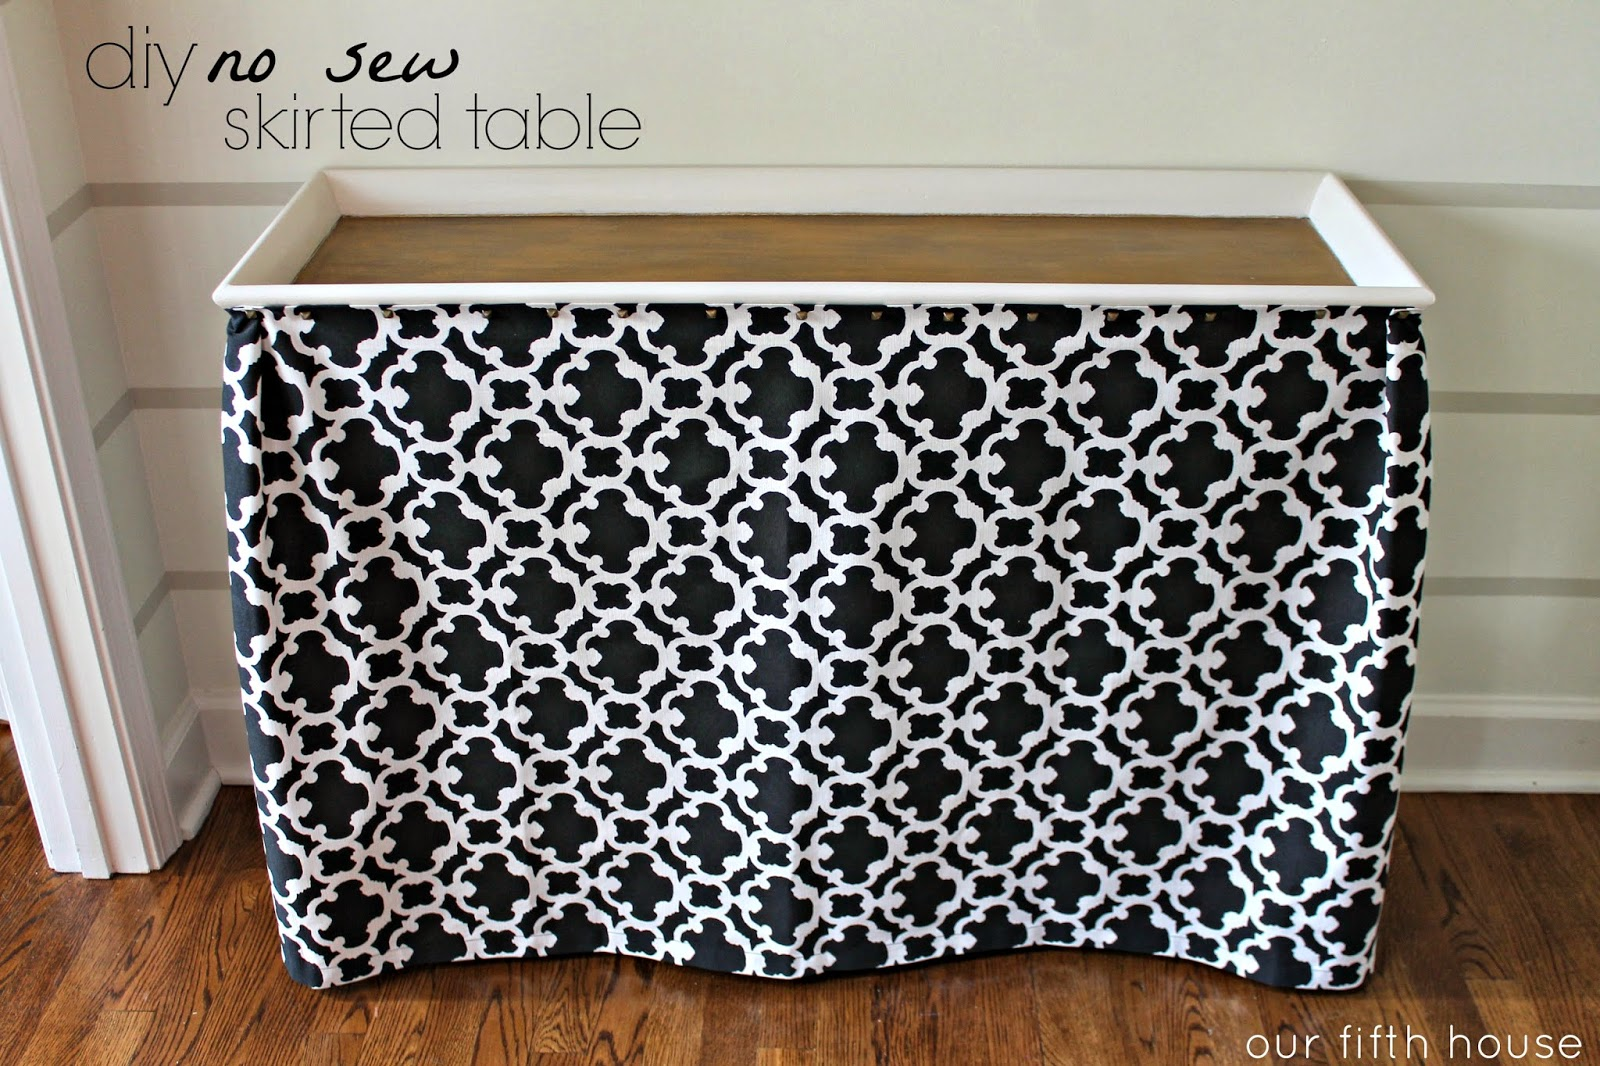 Diy No Sew Skirted Table Our Fifth House